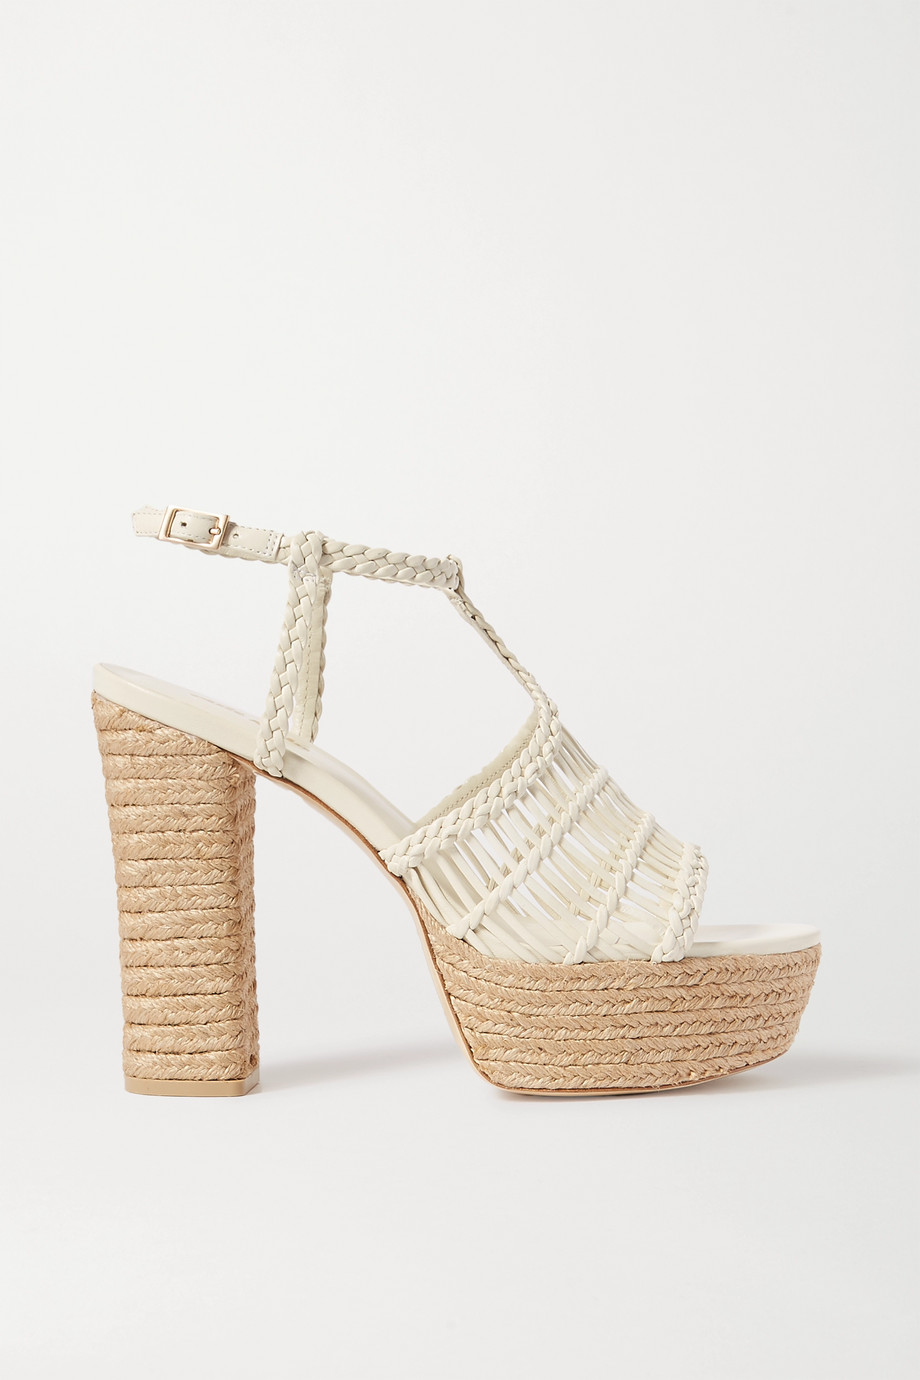 Cult Gaia Thea braided leather espadrille platform sandals